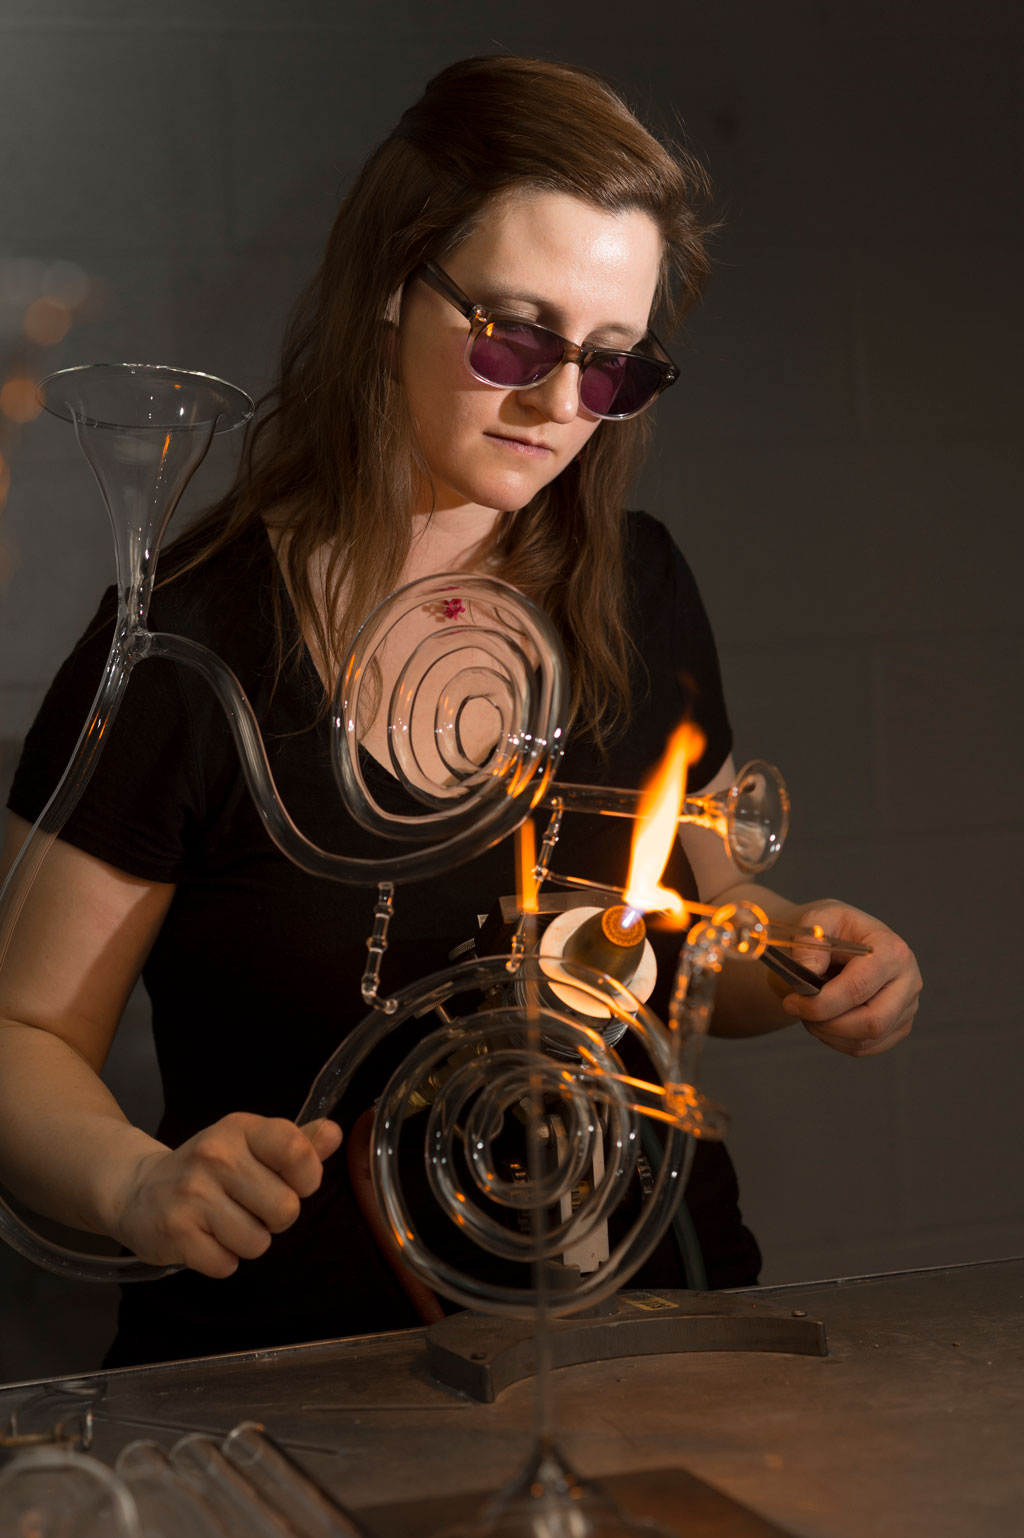 Madeline Rile Smith flameworking a glass instrument